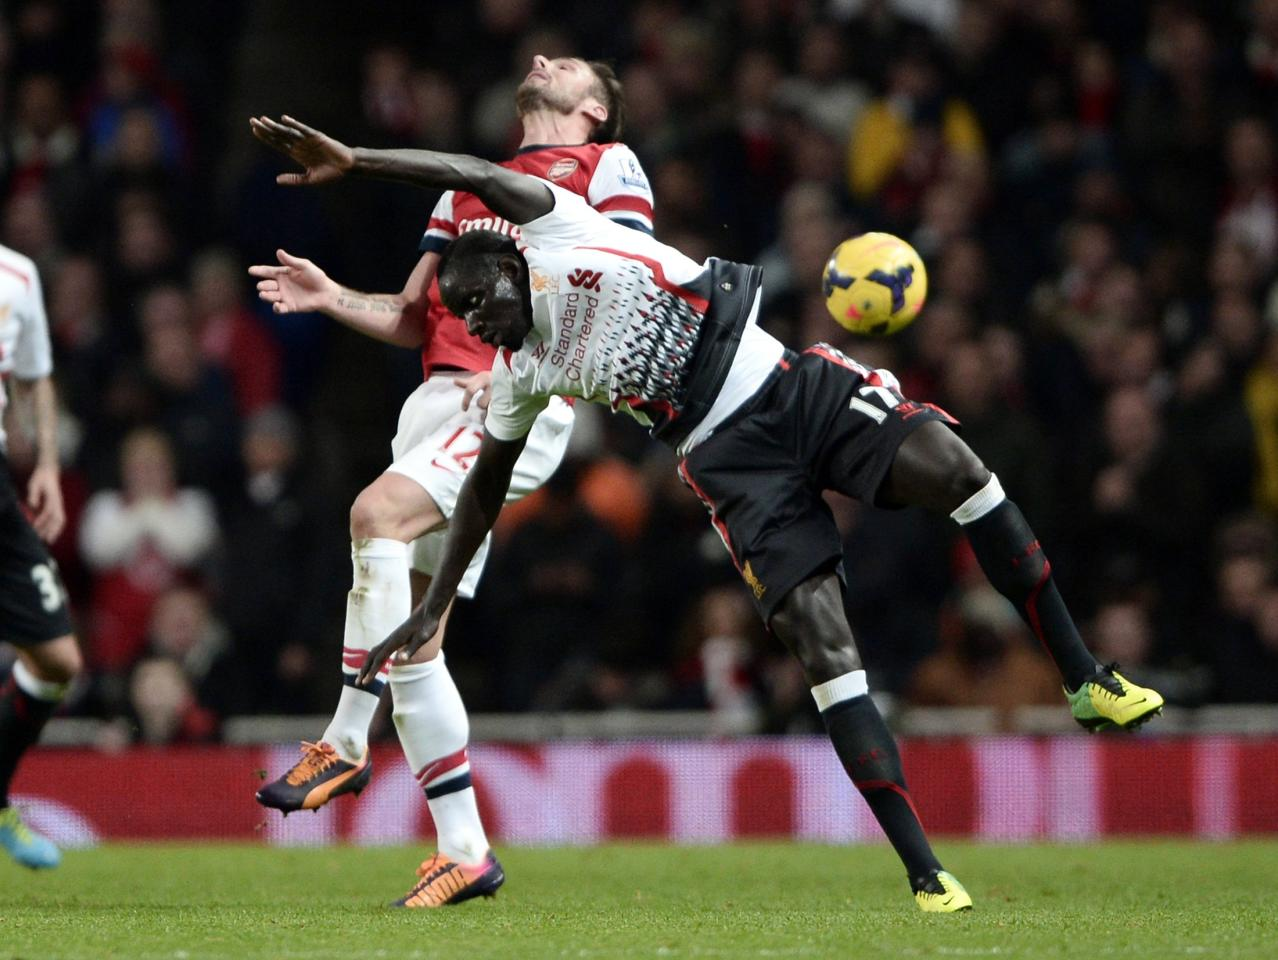 """Arsenal's Olivier Giroud challenges Liverpool's Mamadou Sakho (front) during their English Premier League soccer match at the Emirates stadium in London November 2, 2013. REUTERS/Dylan Martinez (BRITAIN - Tags: SPORT SOCCER) FOR EDITORIAL USE ONLY. NOT FOR SALE FOR MARKETING OR ADVERTISING CAMPAIGNS. NO USE WITH UNAUTHORIZED AUDIO, VIDEO, DATA, FIXTURE LISTS, CLUB/LEAGUE LOGOS OR """"LIVE"""" SERVICES. ONLINE IN-MATCH USE LIMITED TO 45 IMAGES, NO VIDEO EMULATION. NO USE IN BETTING, GAMES OR SINGLE CLUB/LEAGUE/PLAYER PUBLICATIONS"""